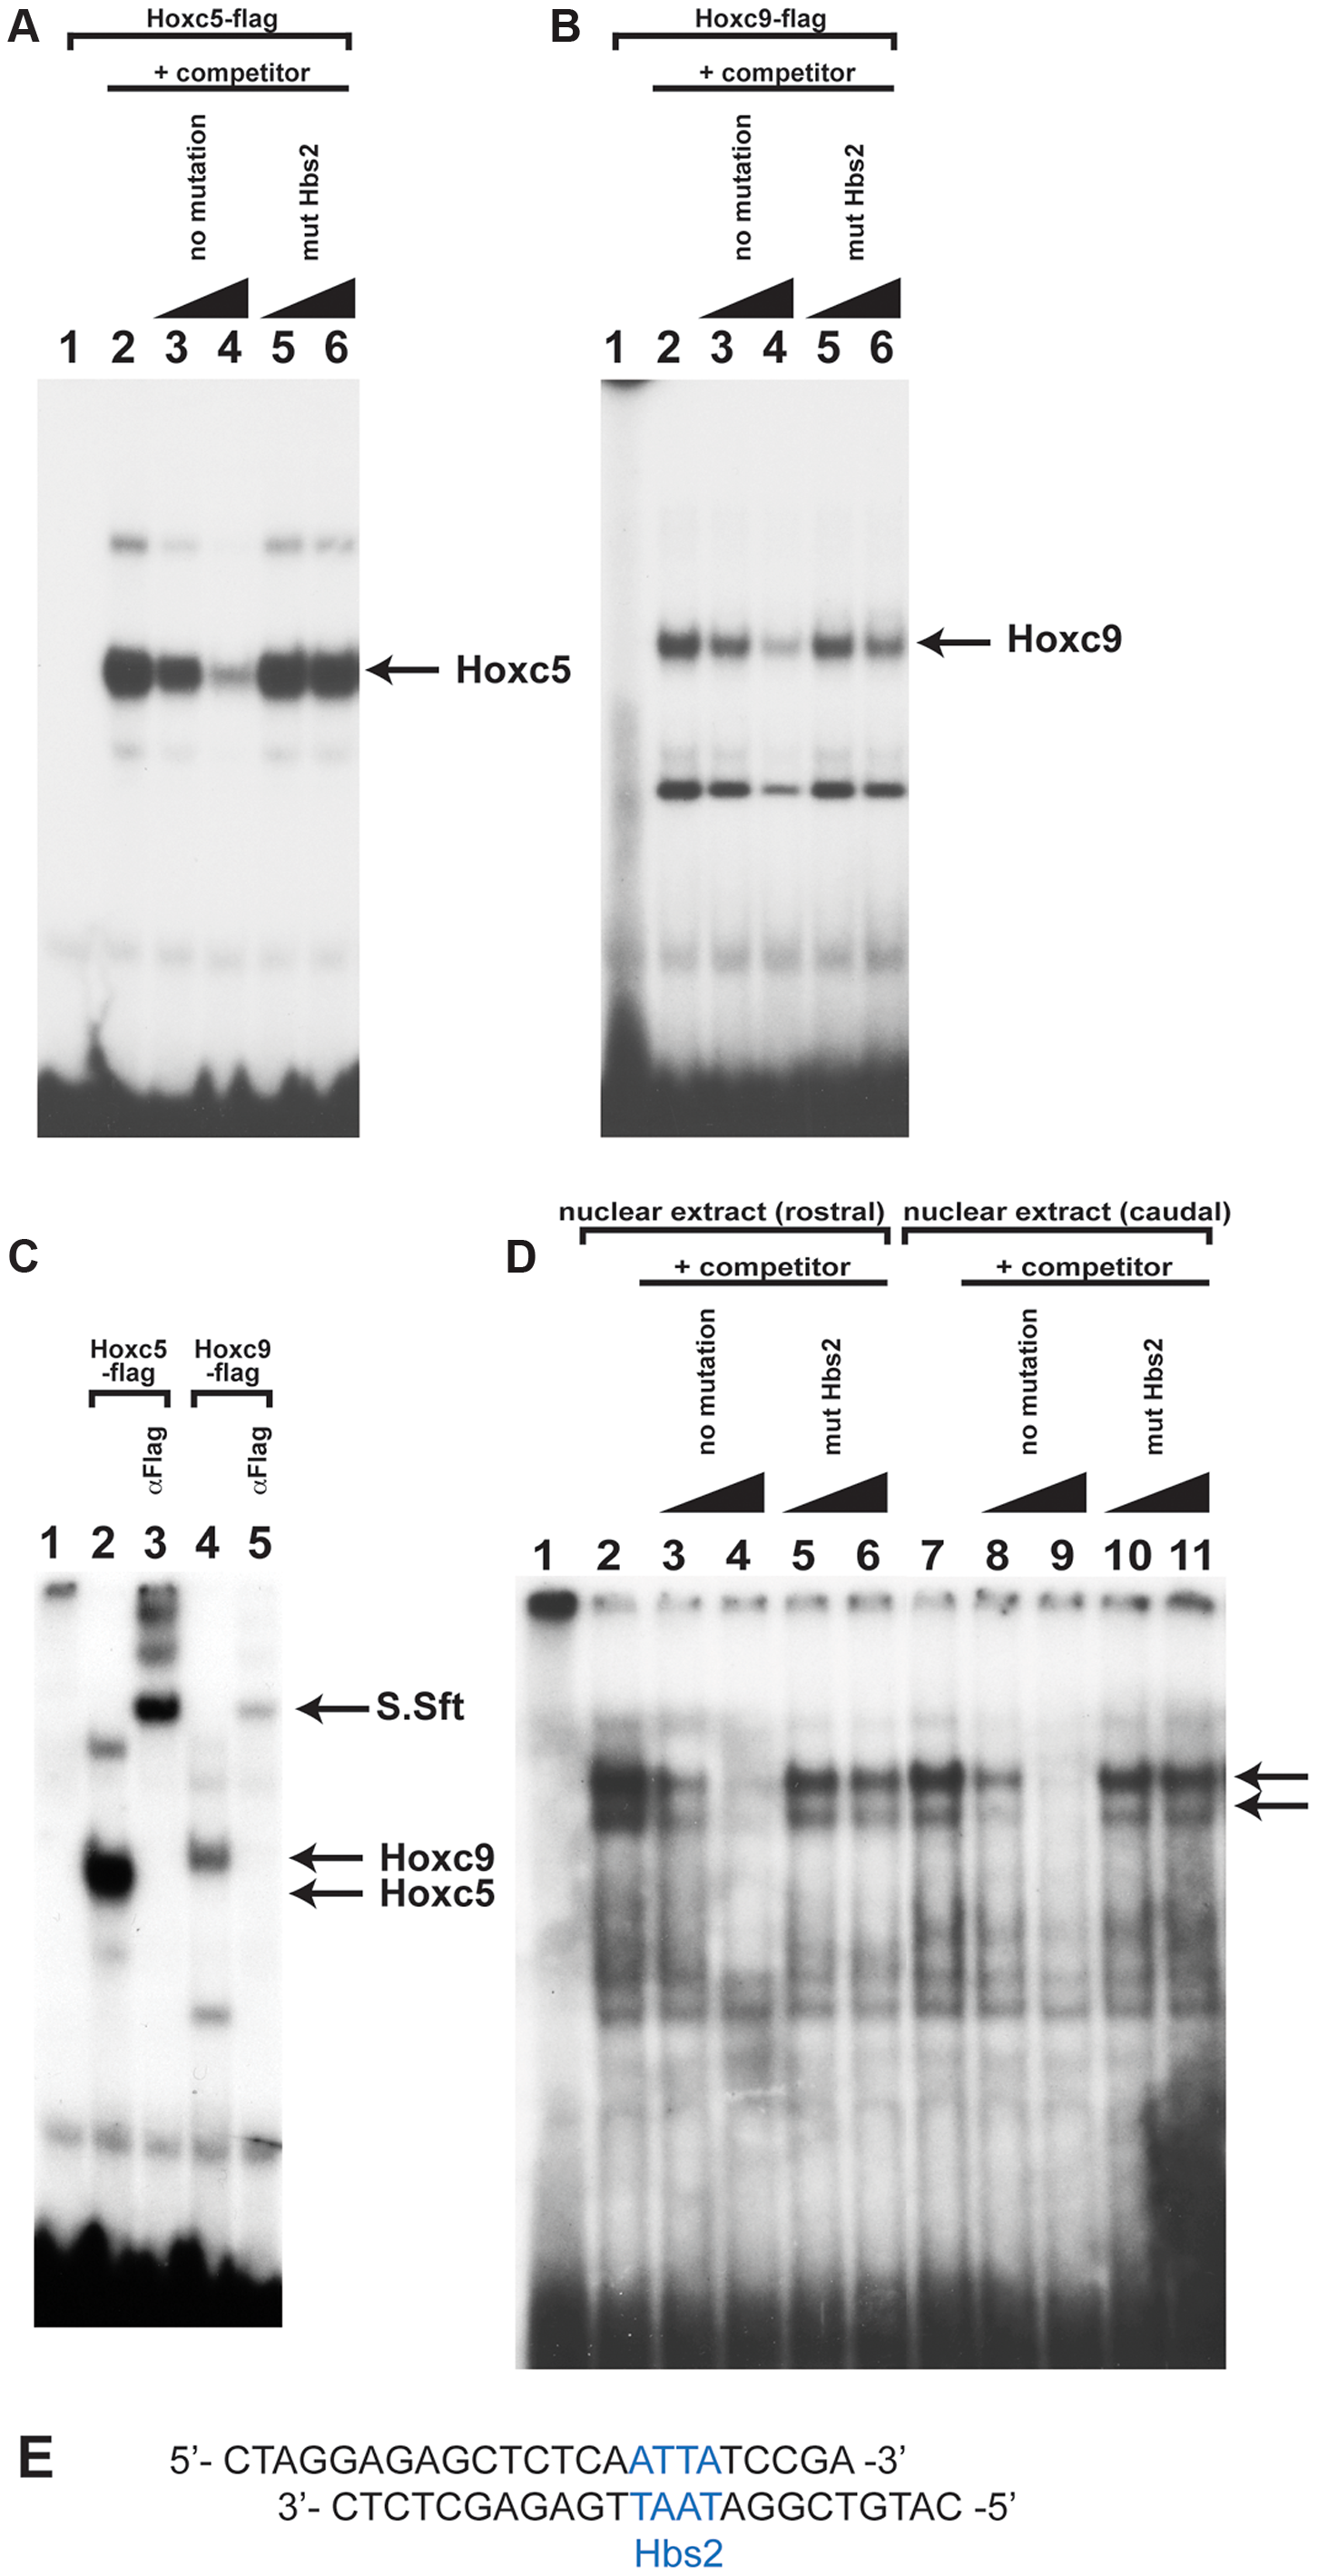 Hox proteins can bind the Hbs2 site.